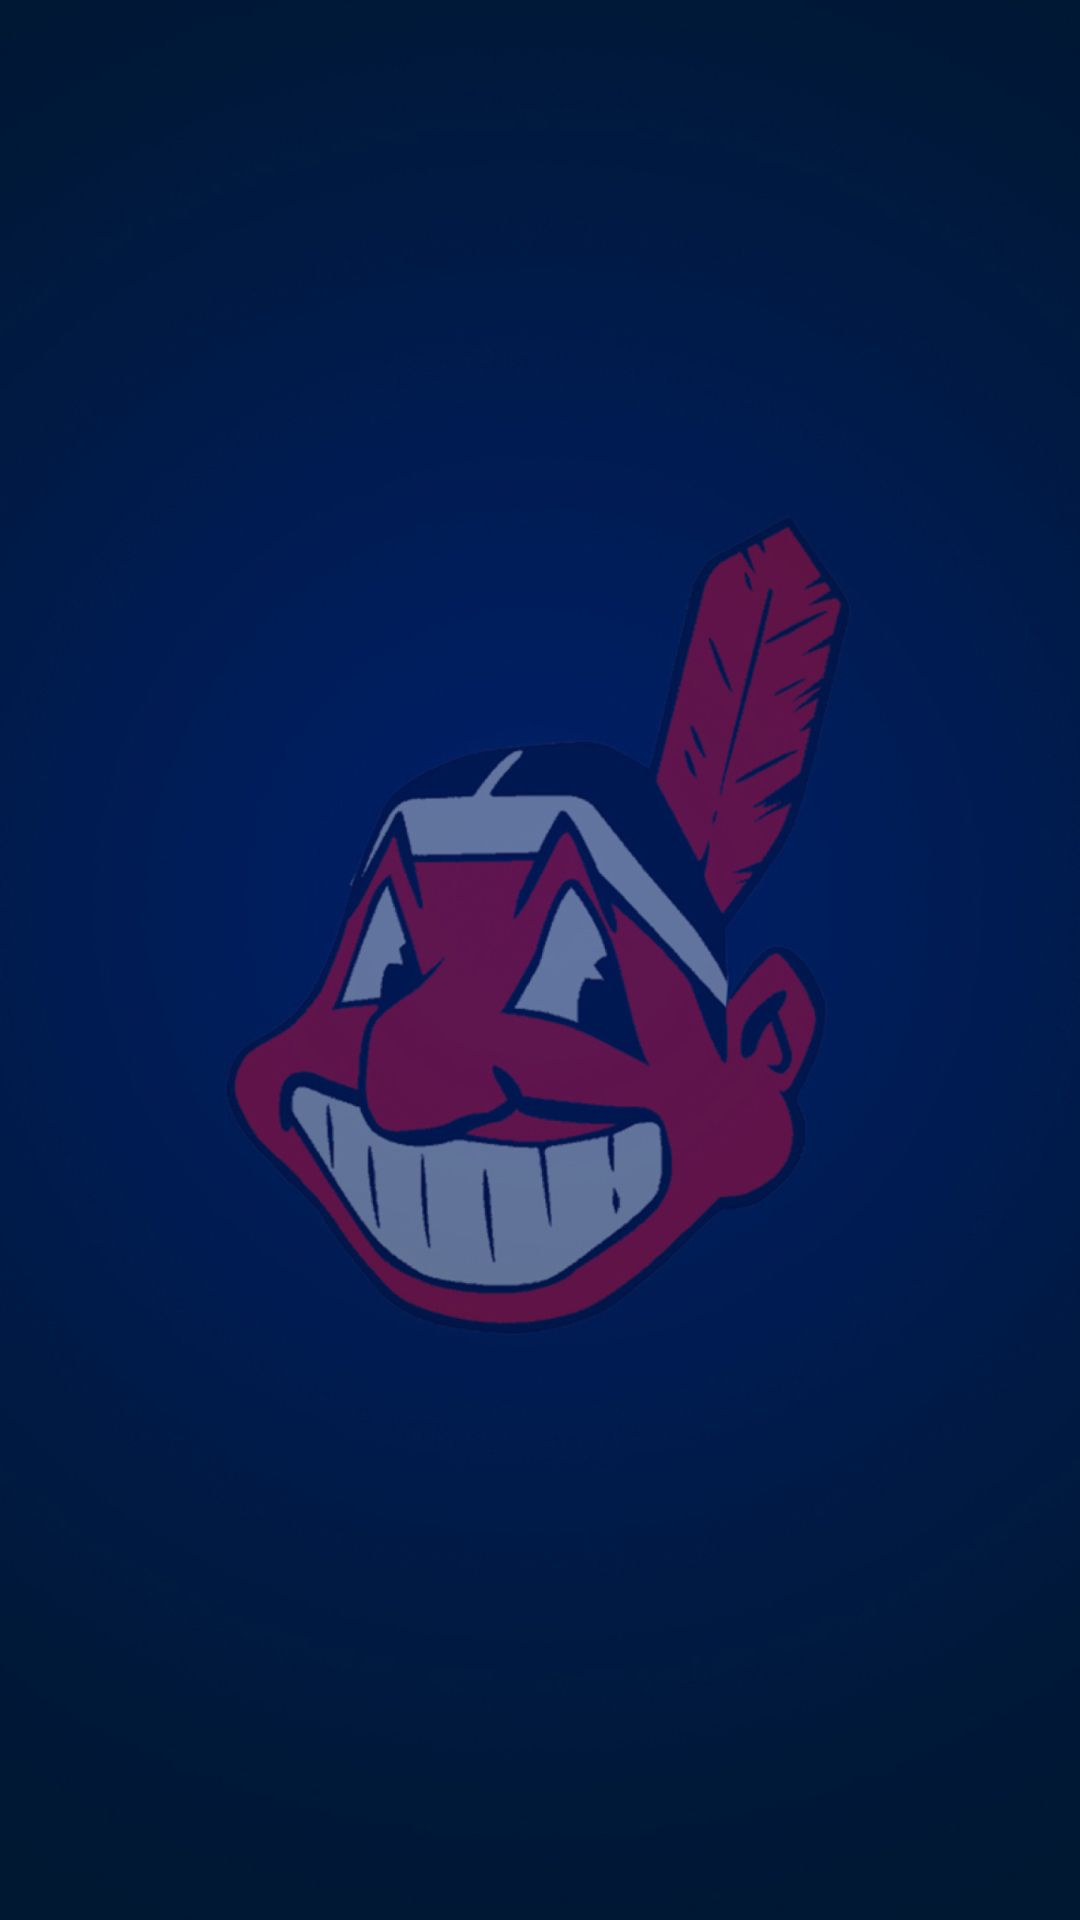 1080x1920 - Cleveland Indians Wallpapers 19